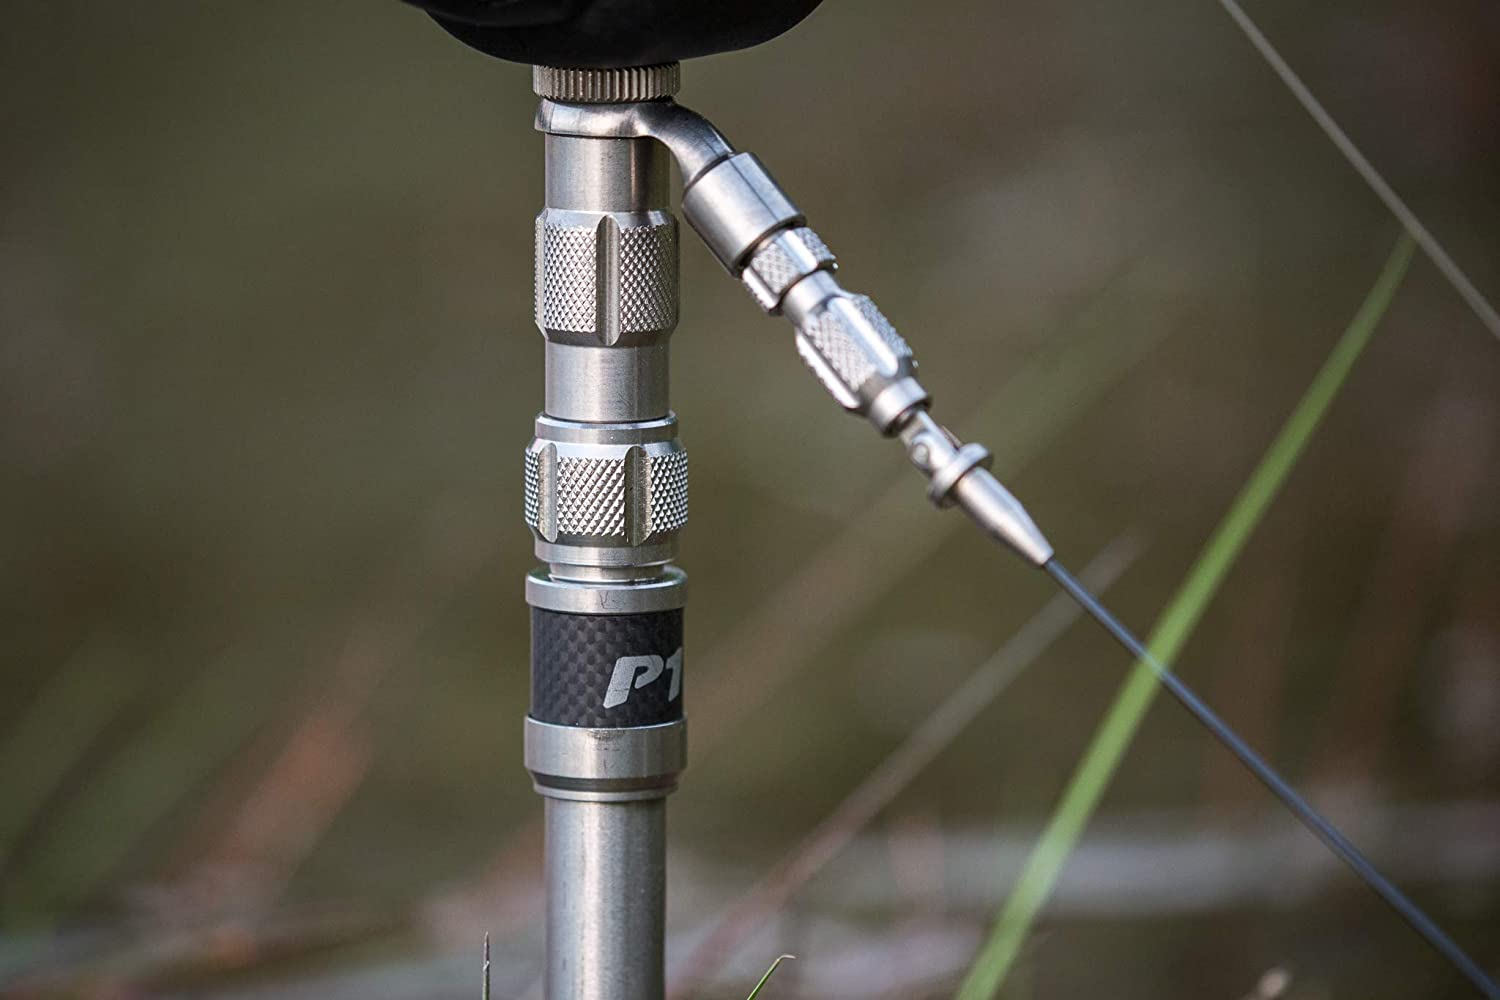 SOLAR TACKLE P1 TRAVEL-LITE BANKSTICK STAINLESS STEEL